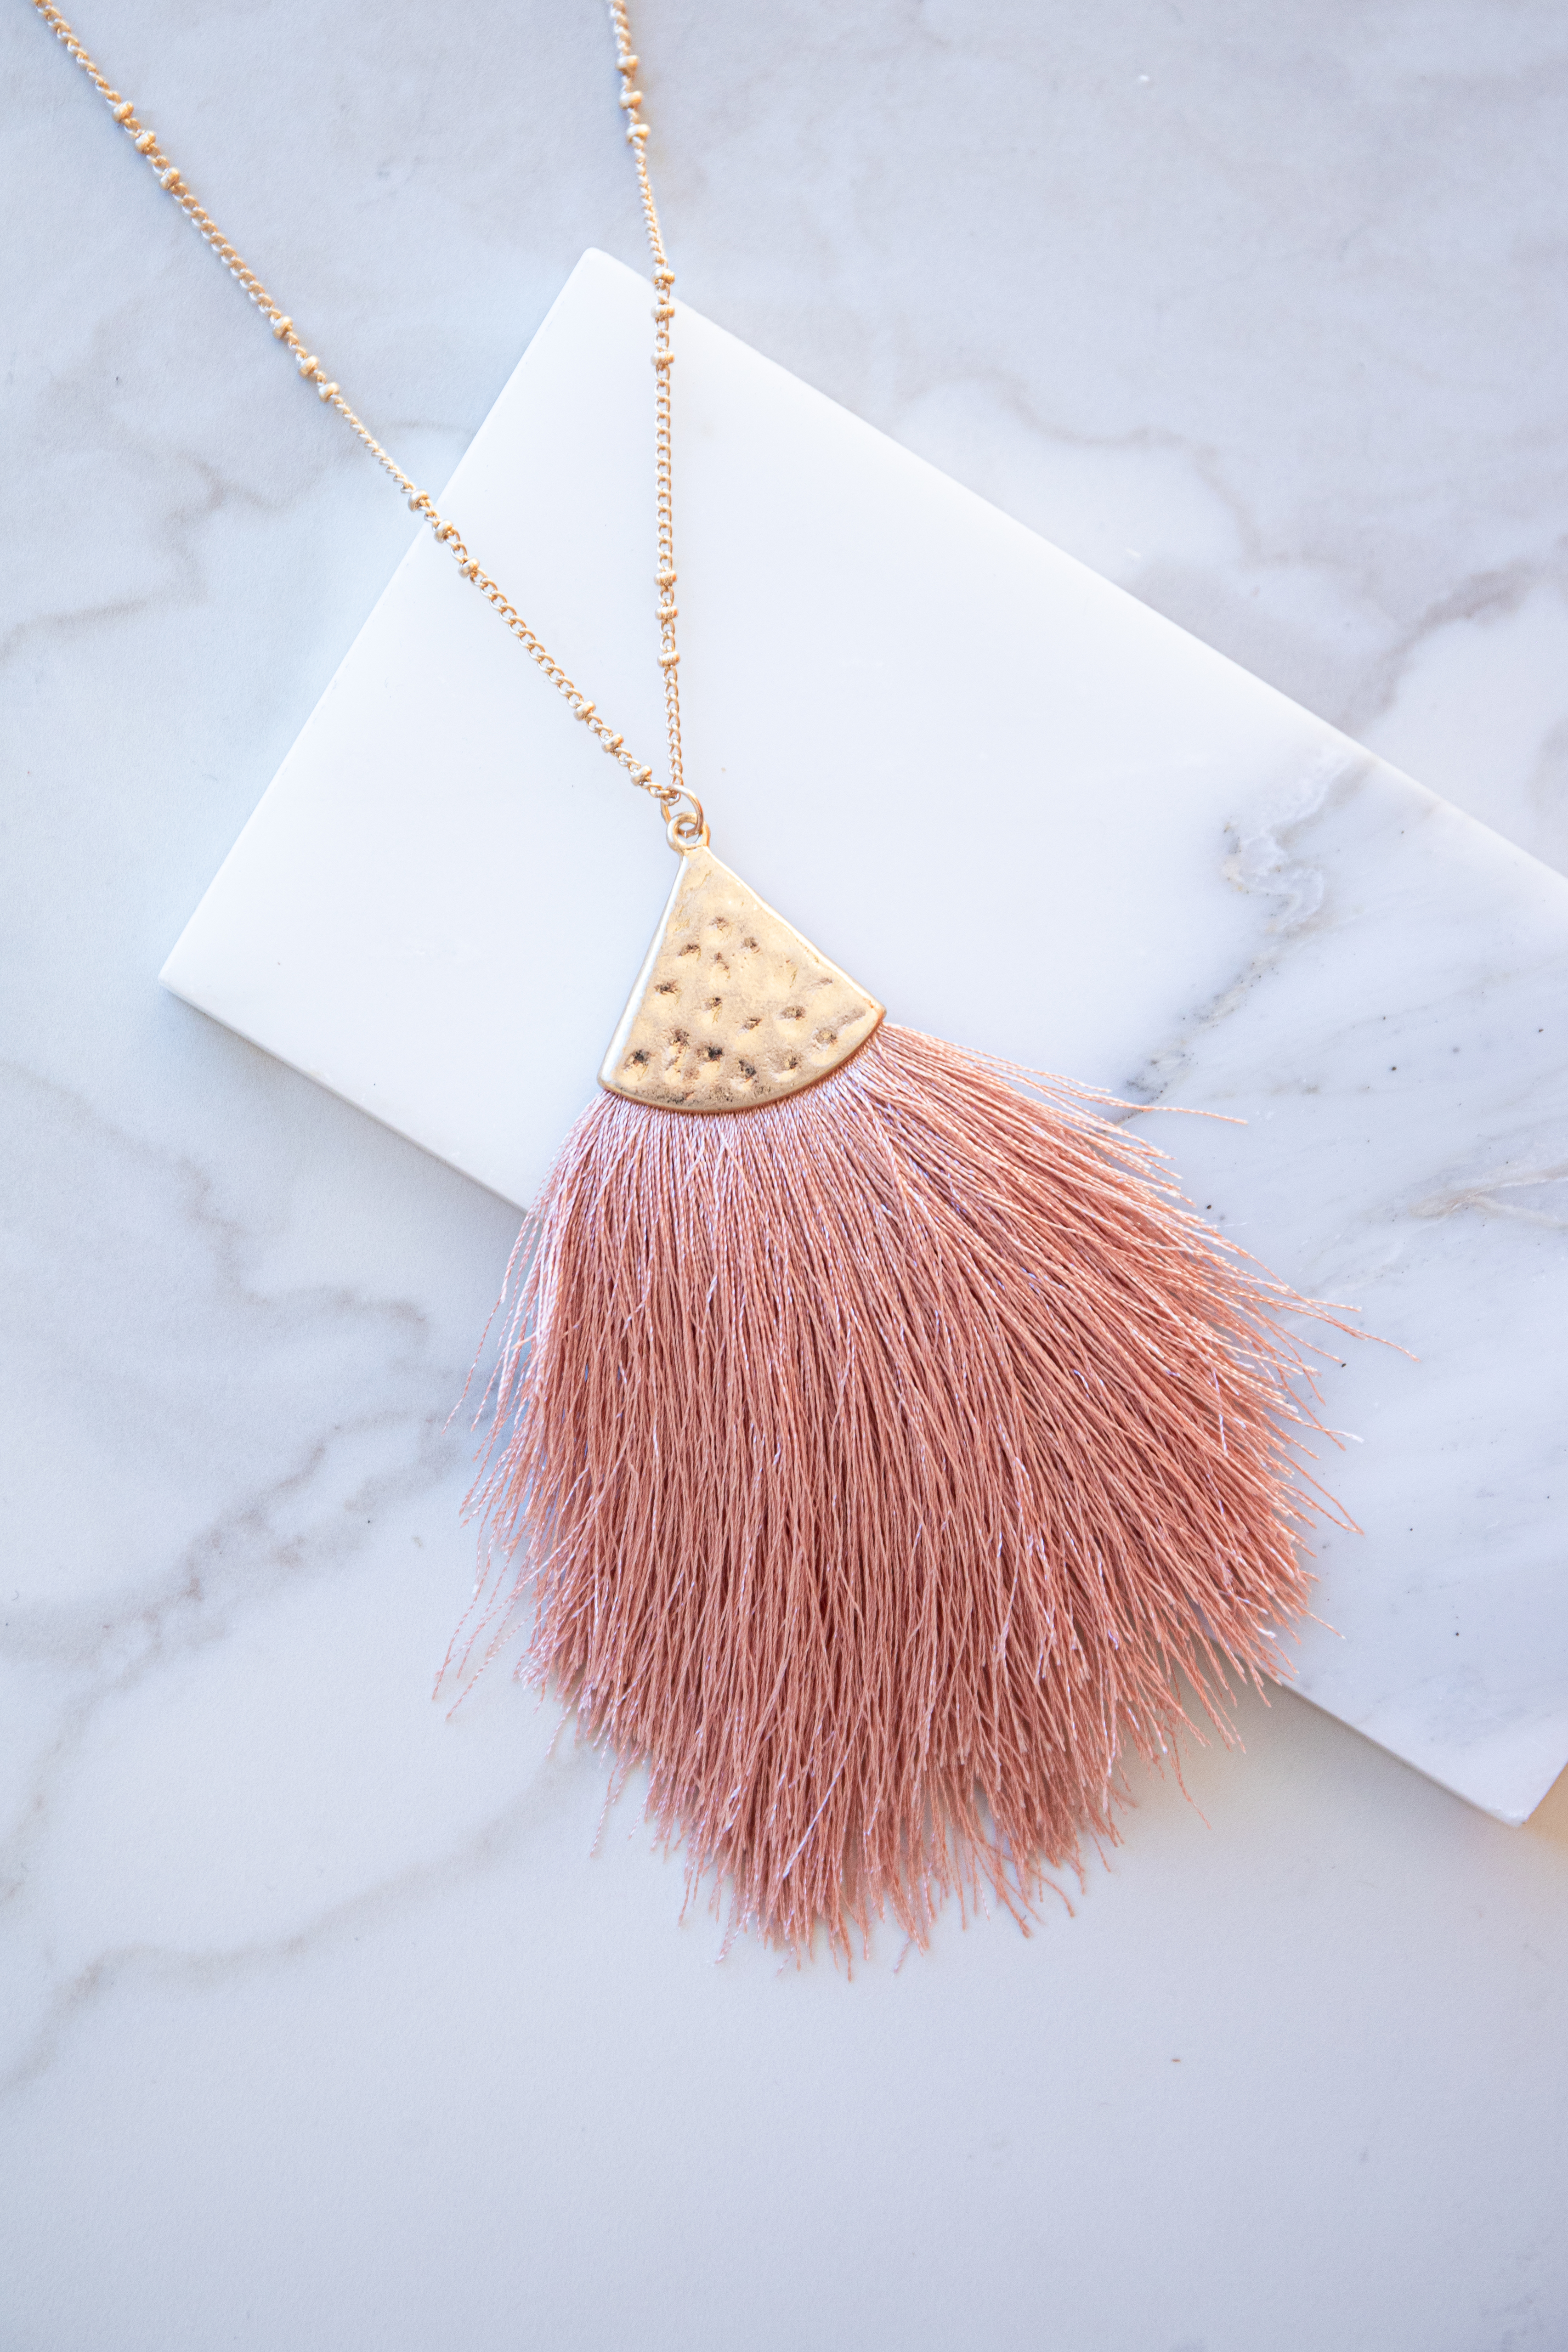 Gold Long Chain Necklace with Dusty Peach Fringe Detail